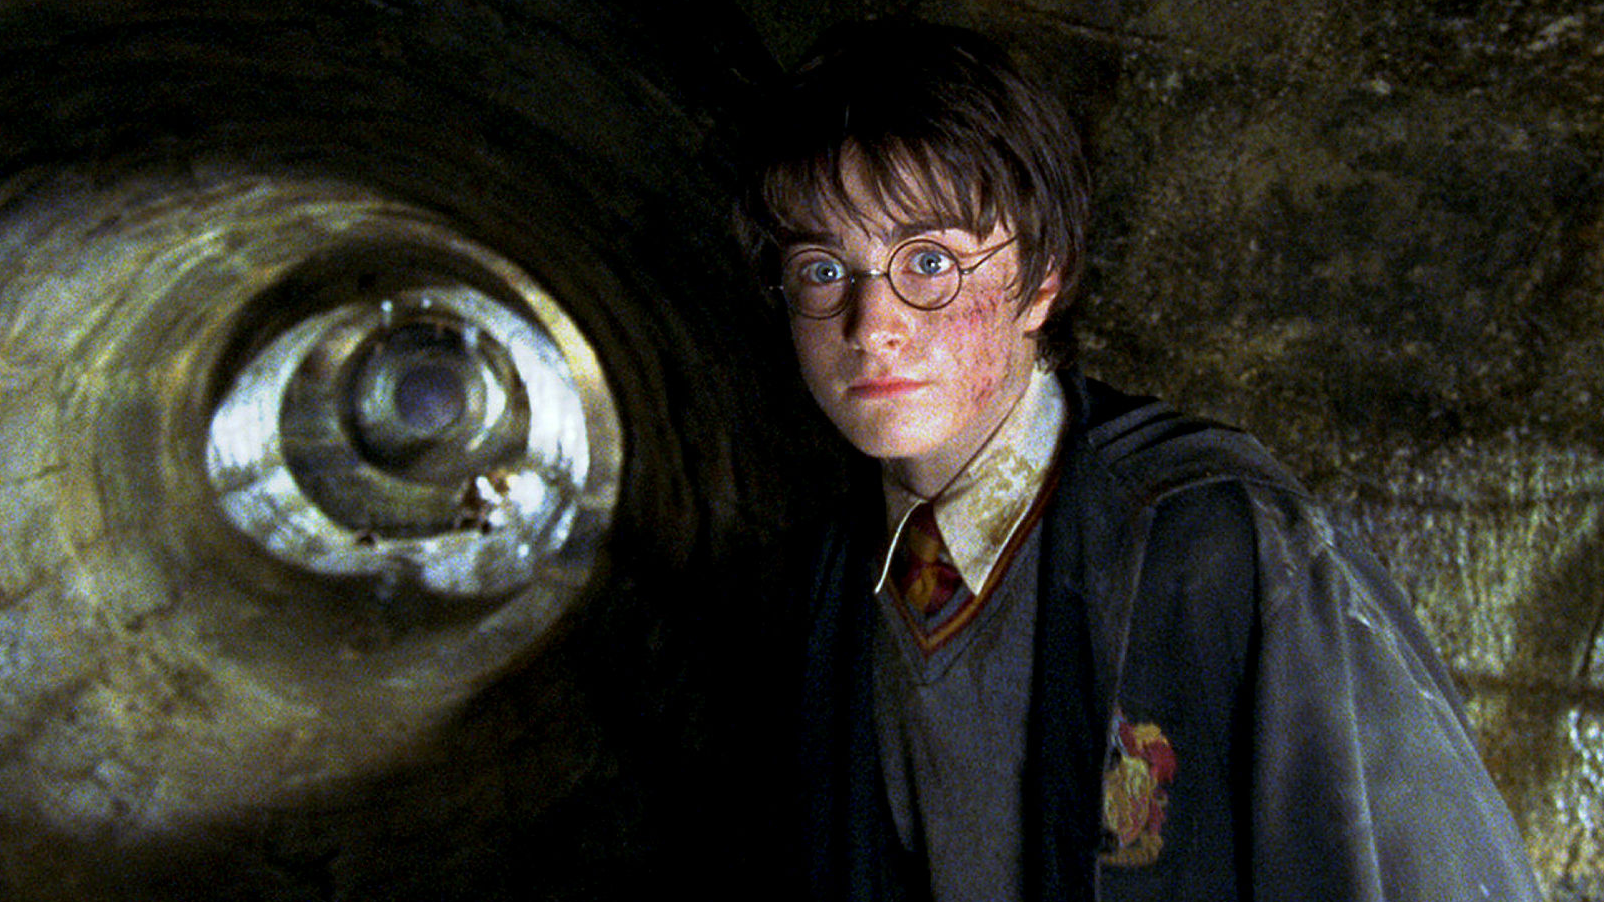 Harry Potter at 40: would he be a financial wizard?   Financial Times